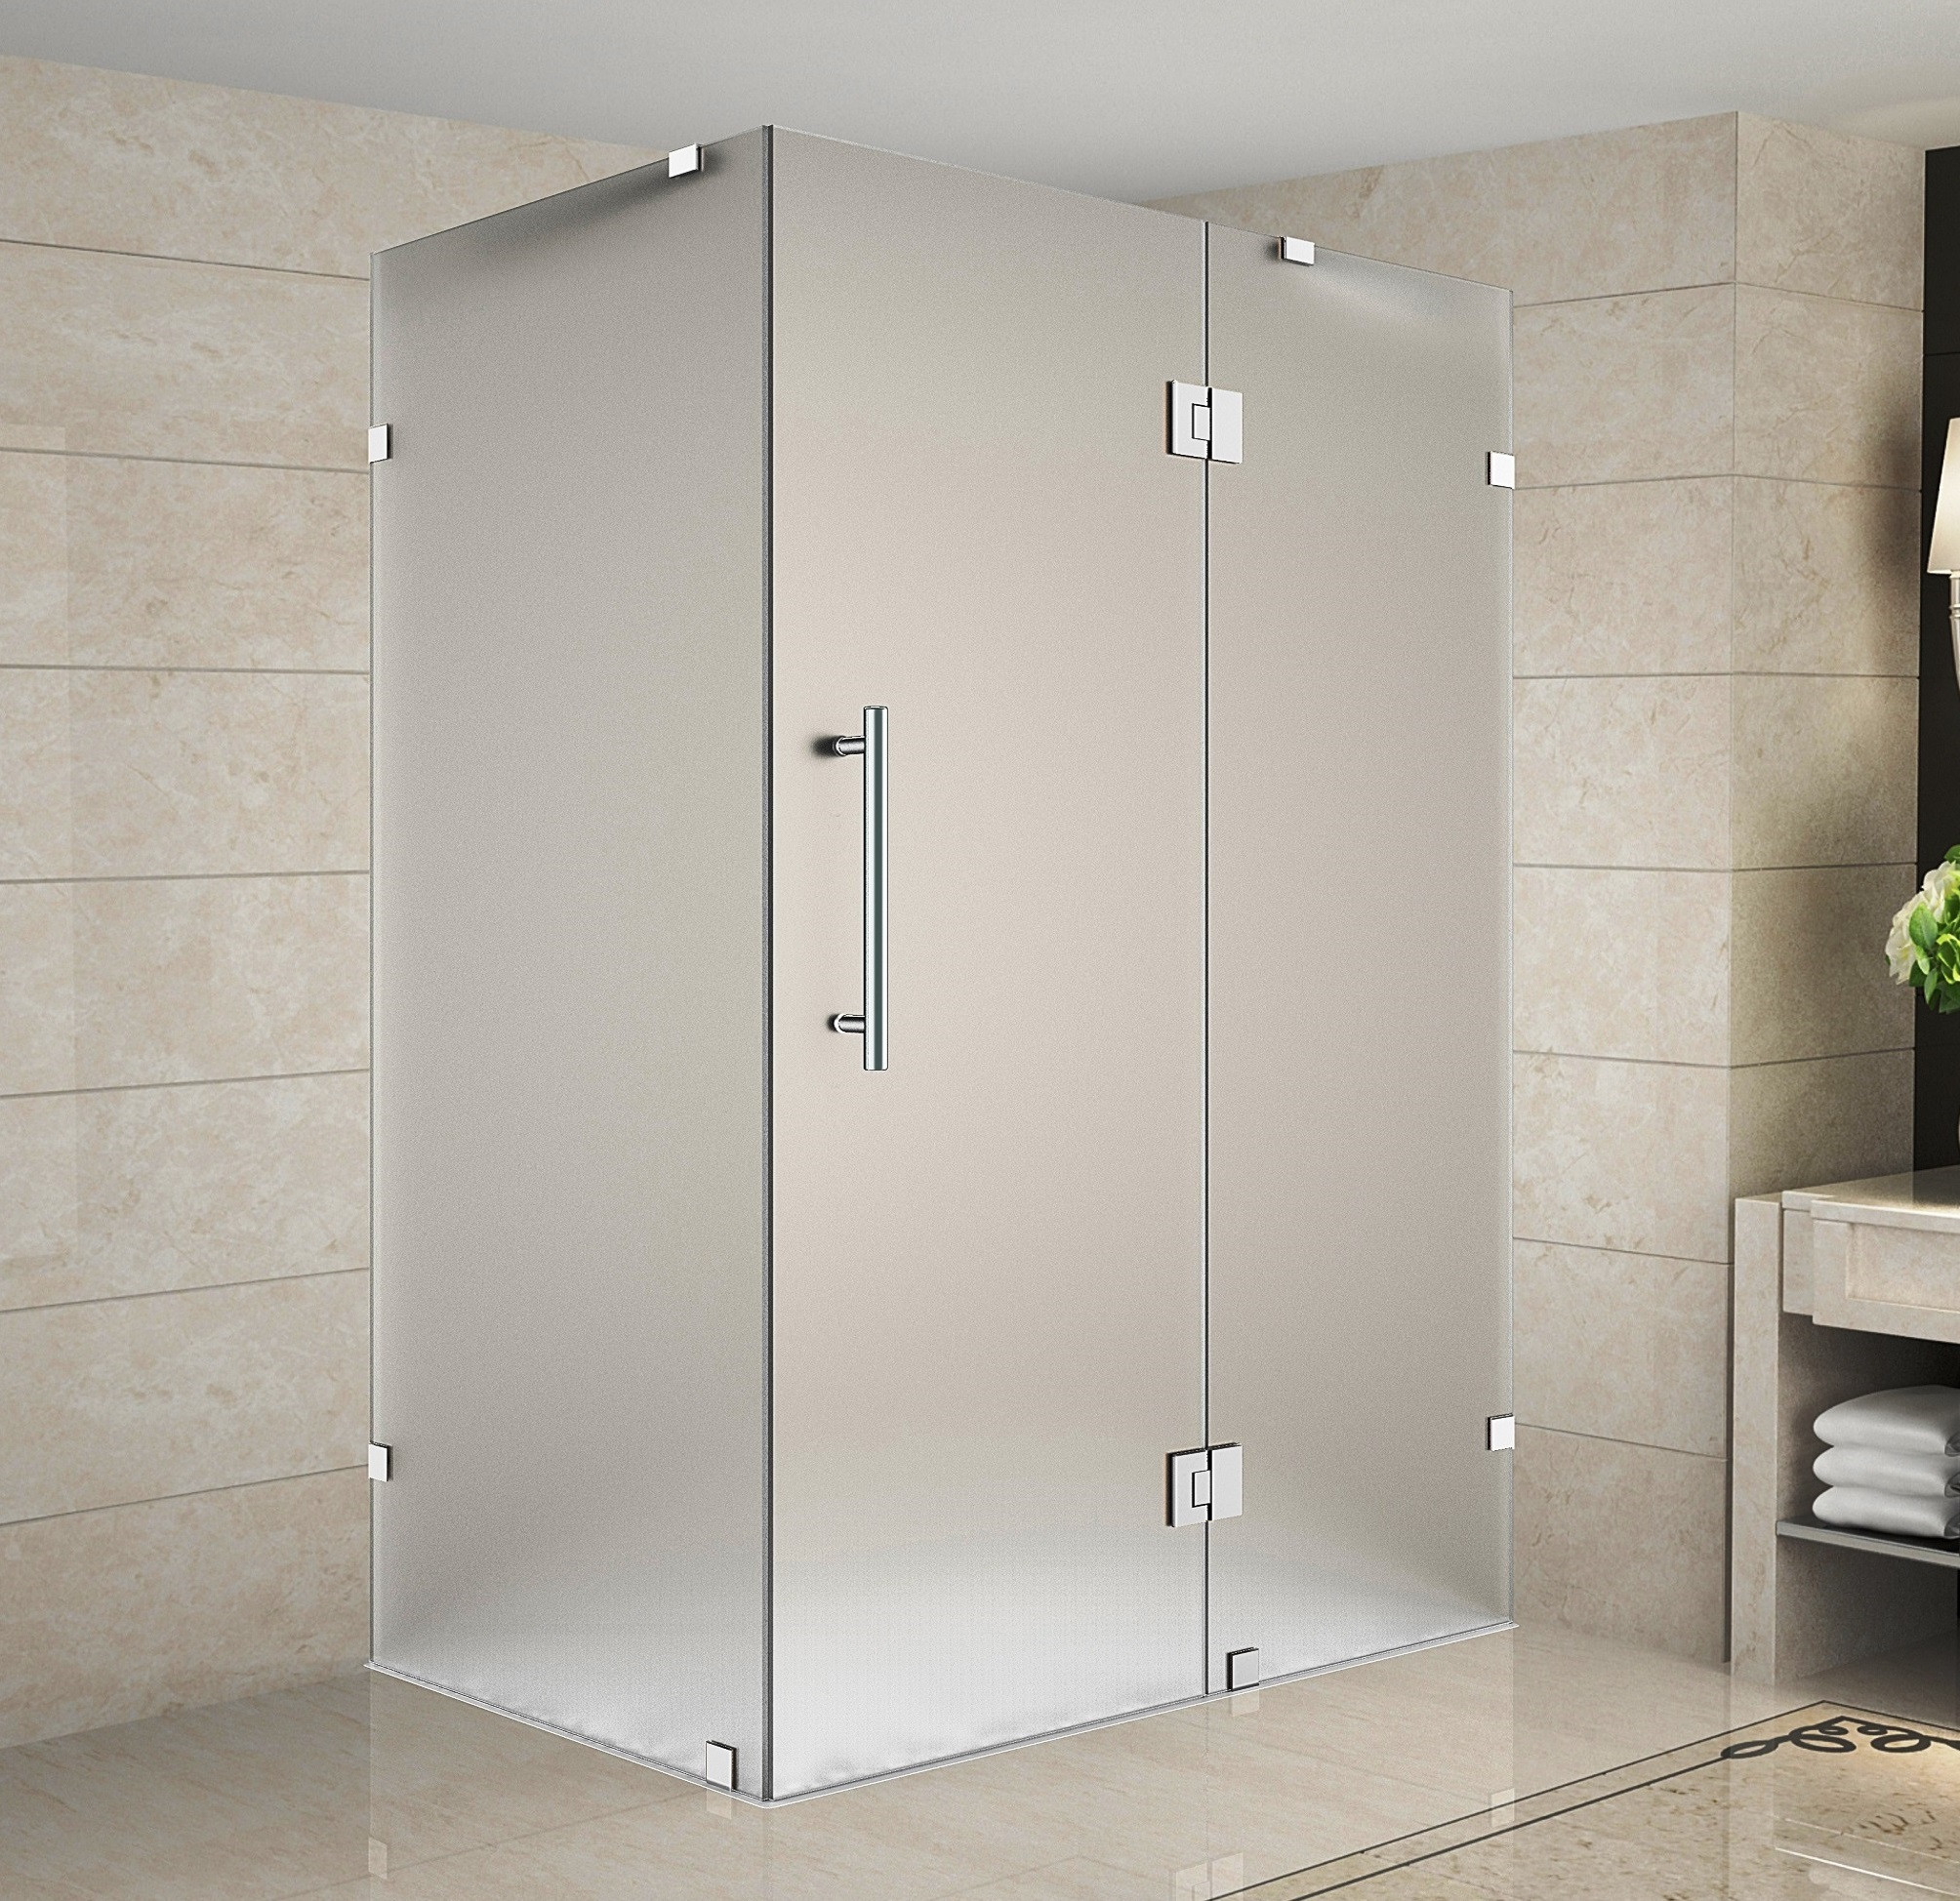 Aston Global SEN987F-CH-4032-10 Chrome Completely Frameless Frosted Glass Shower Enclosure